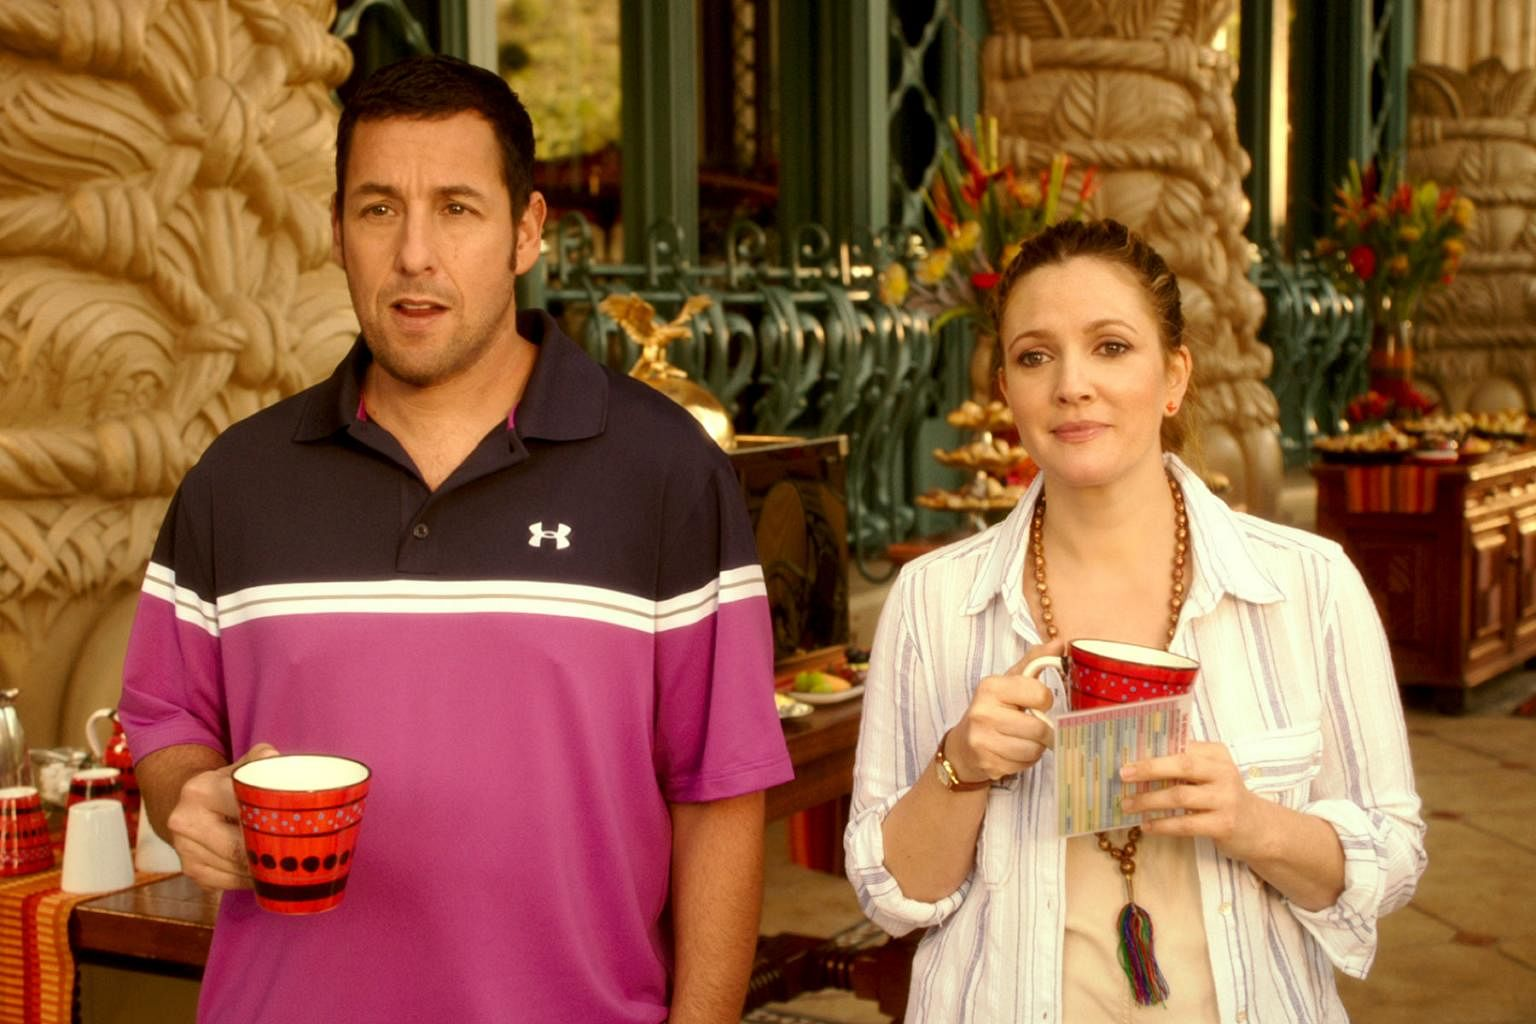 Adam Sandler Is Up For Making Another Movie With Frequent Co Star Drew Barrymore Entertainment News Top Stories The Straits Times